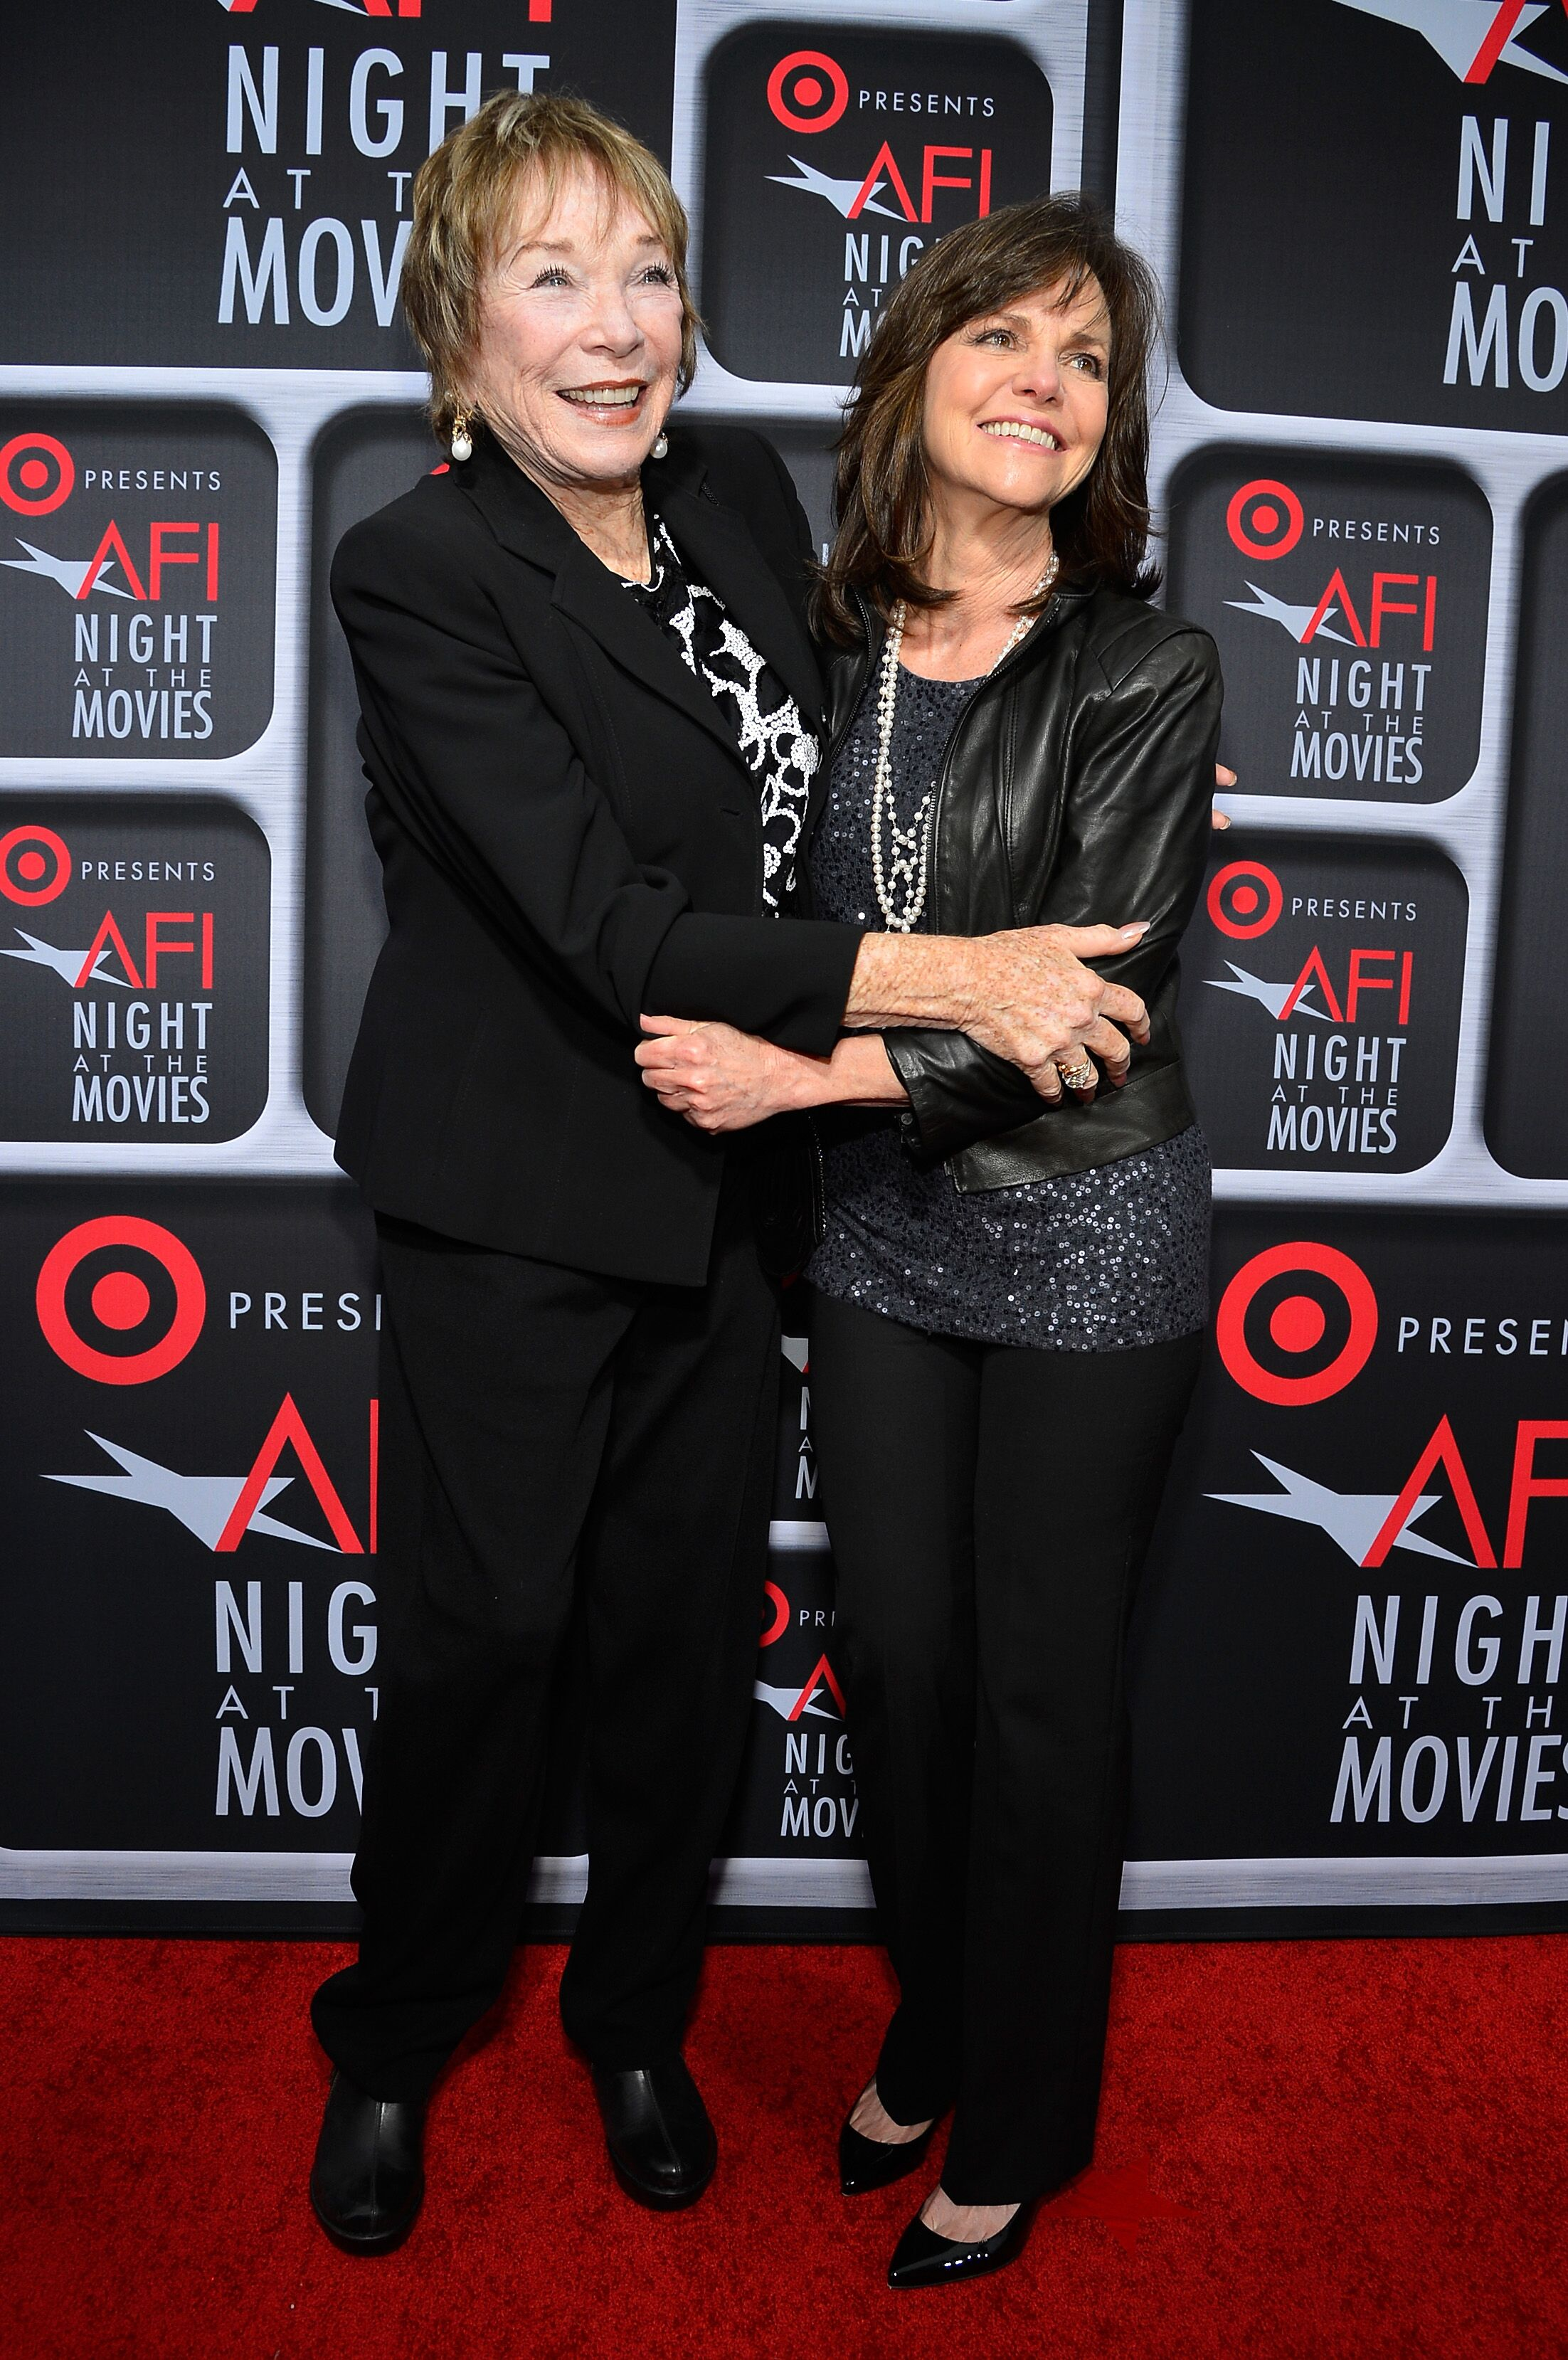 Shirley MacLaine and Sally Field arrive on the red carpet for Target Presents AFI's Night at the Movies at ArcLight Cinemas. | Source: Getty Images